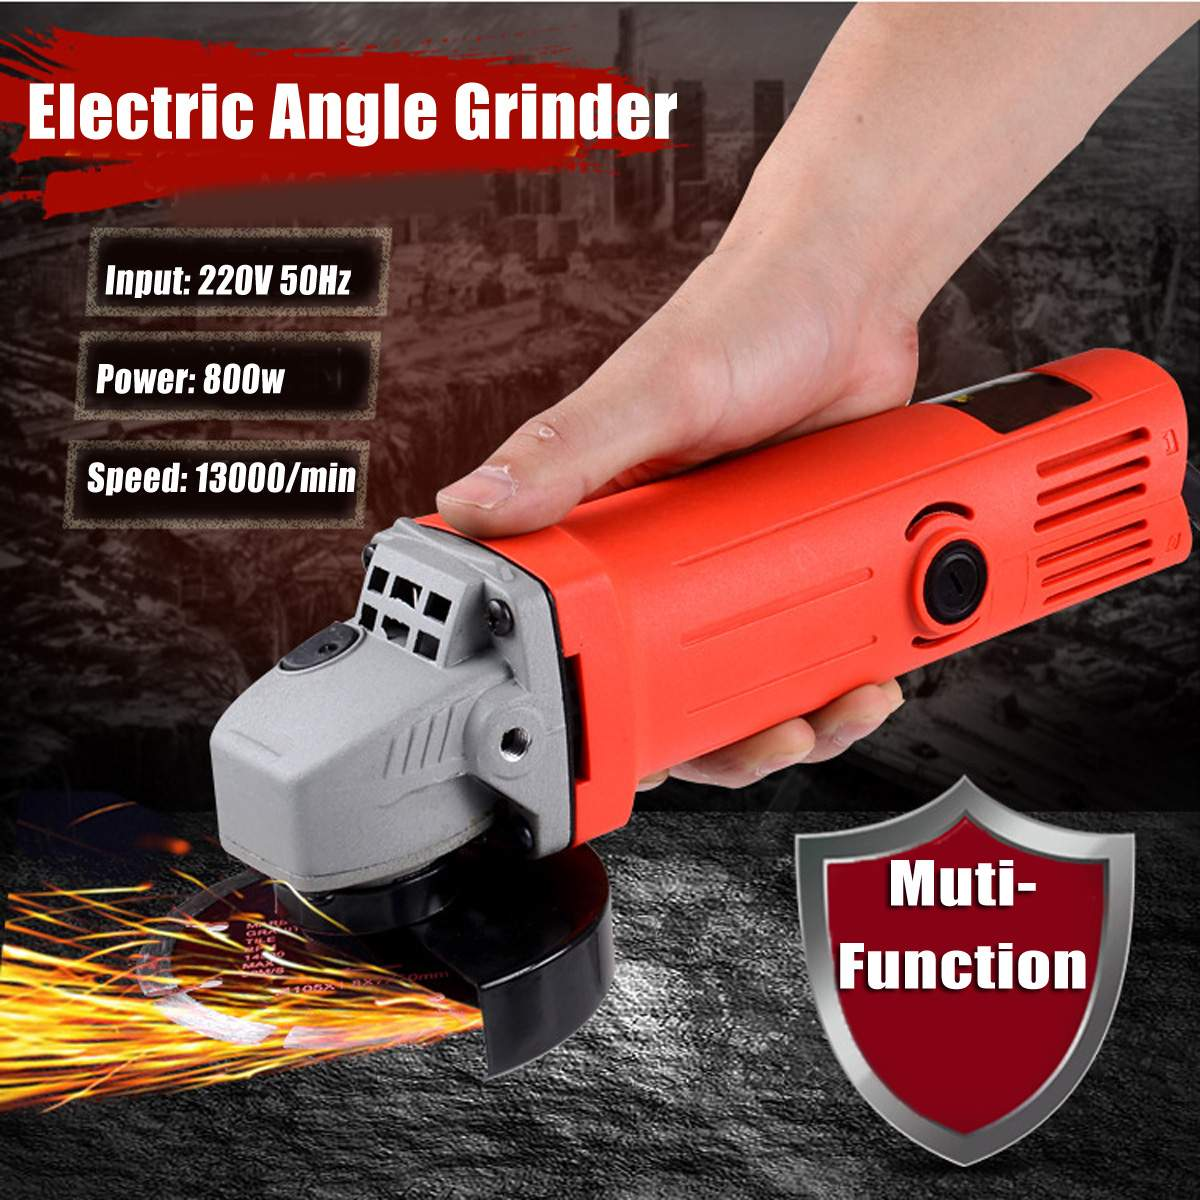 800W 220V 100mm Portable Electric Angle Grinder Muti-Function Household Polish Machine Grinding Cutting Polishing Machine800W 220V 100mm Portable Electric Angle Grinder Muti-Function Household Polish Machine Grinding Cutting Polishing Machine